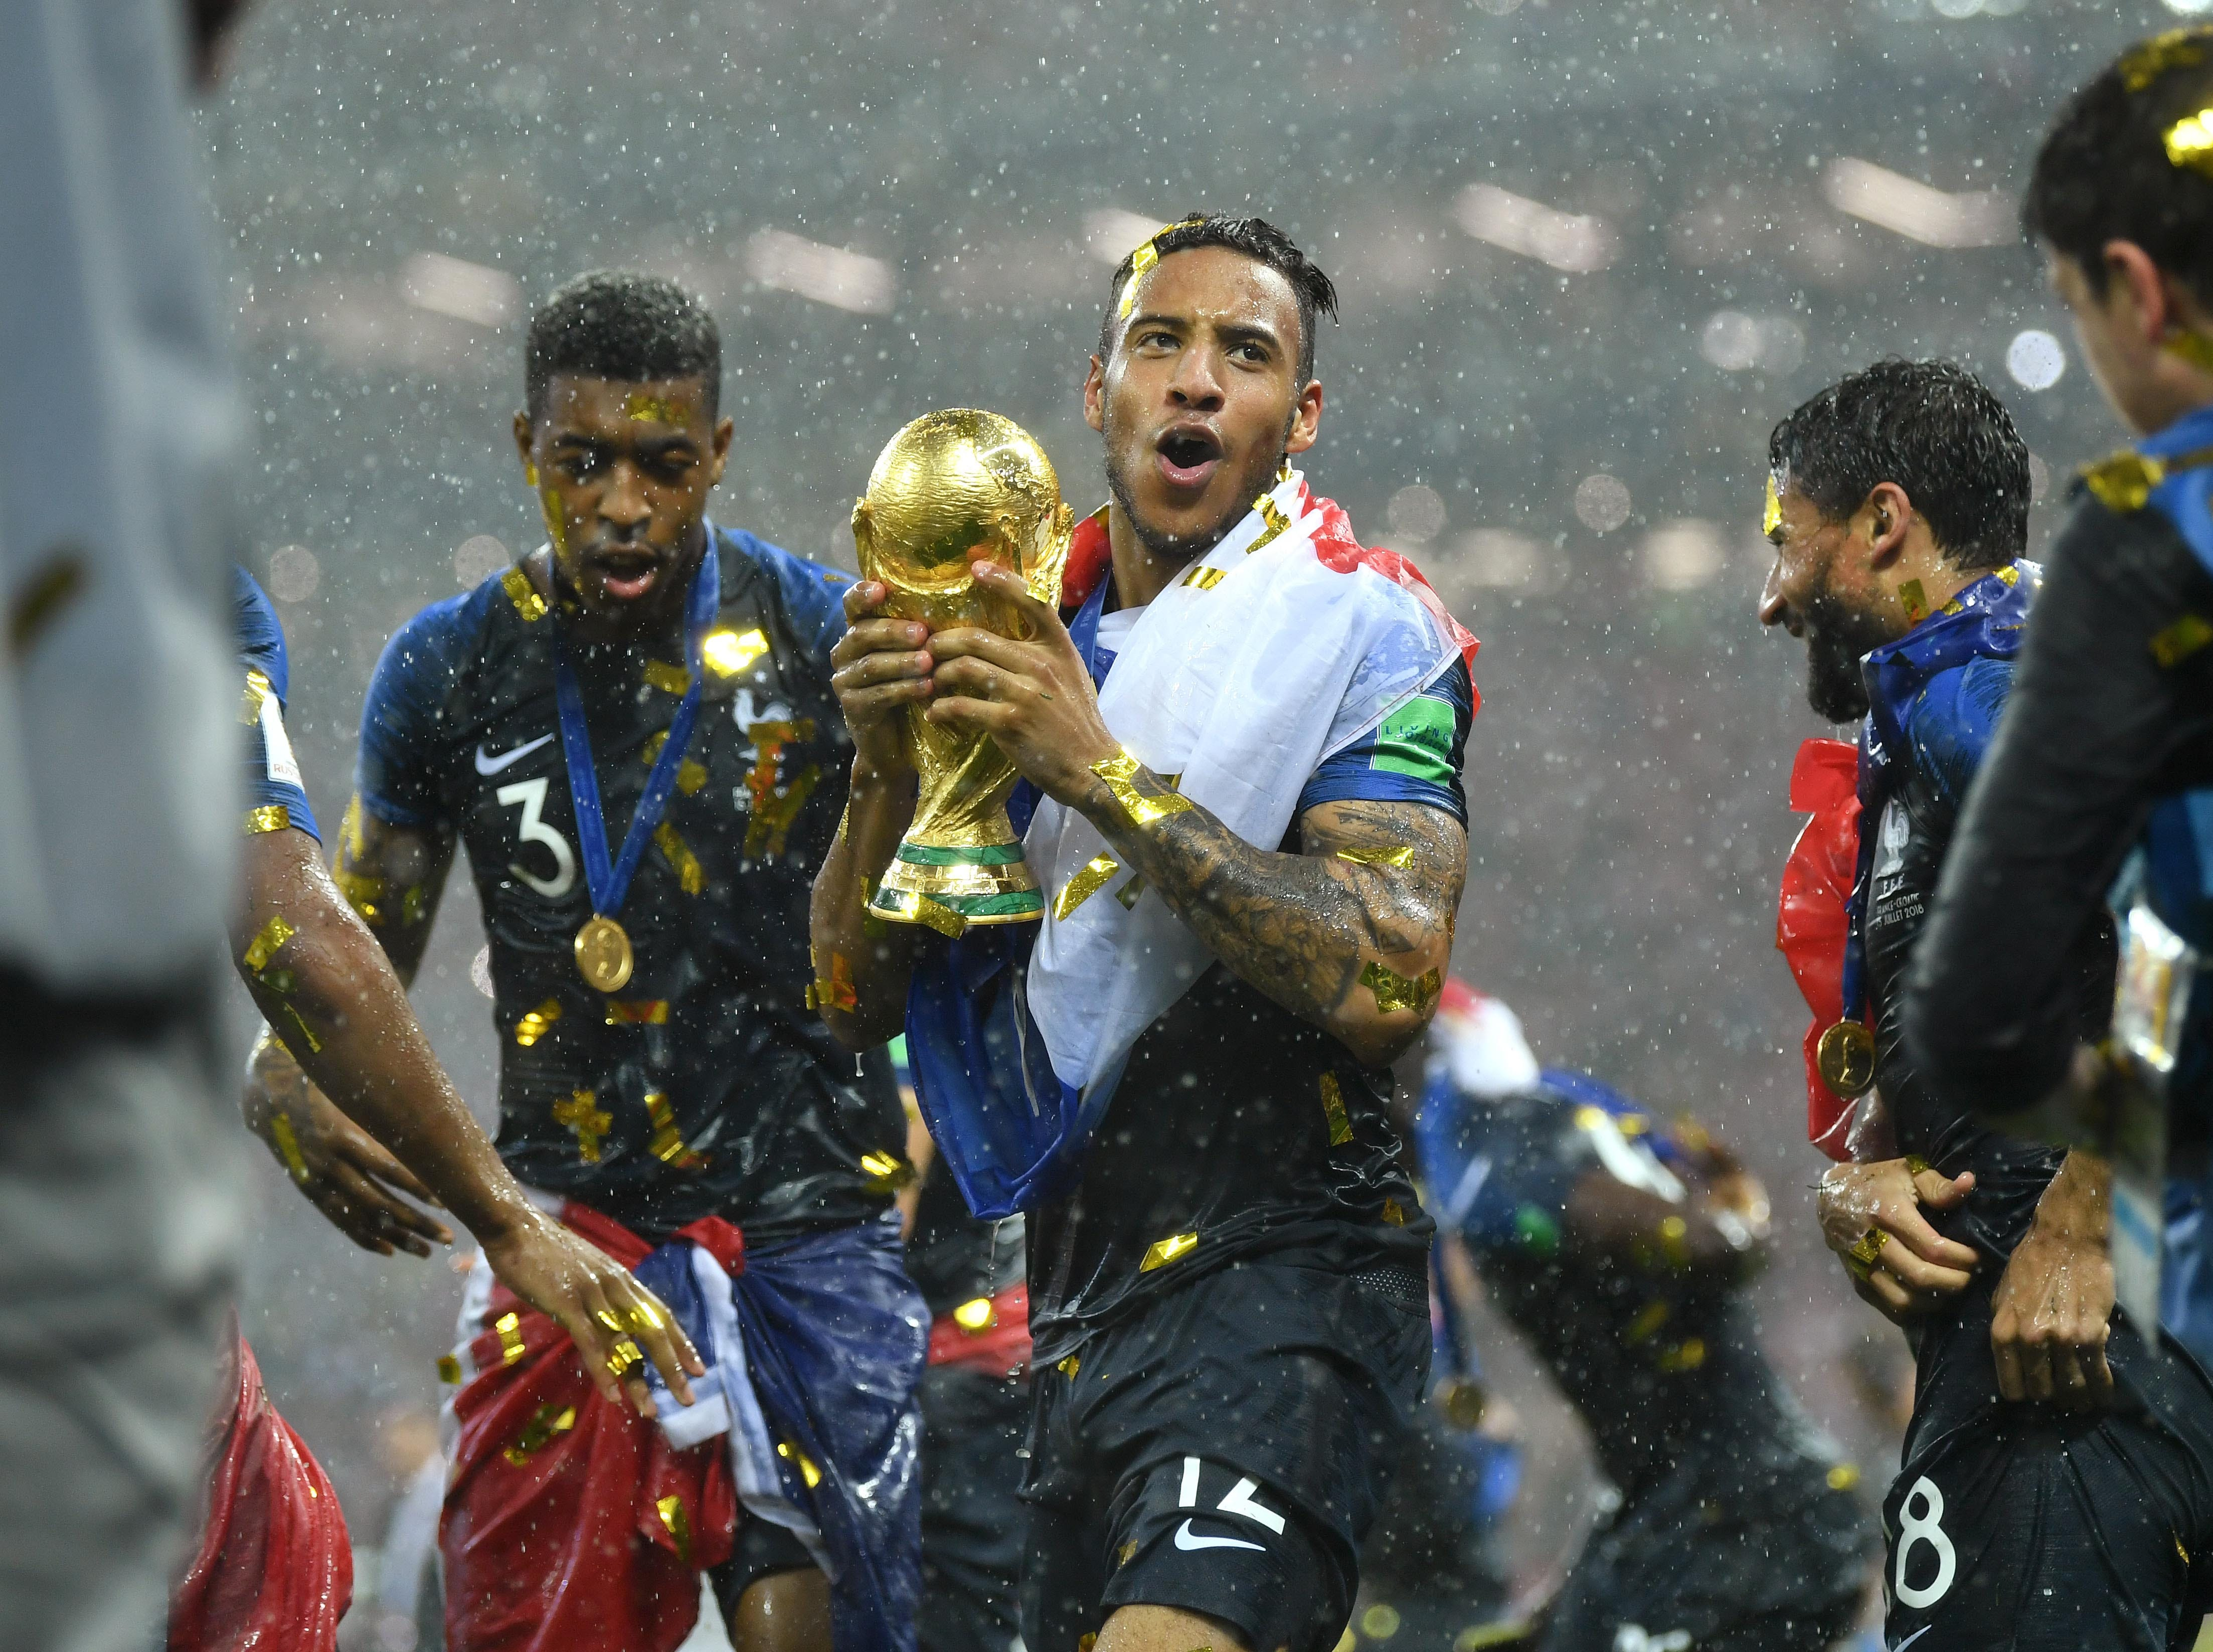 July 15: France midfielder Corentin Tolisso celebrates with the World Cup trophy after defeating Croatia in the final.